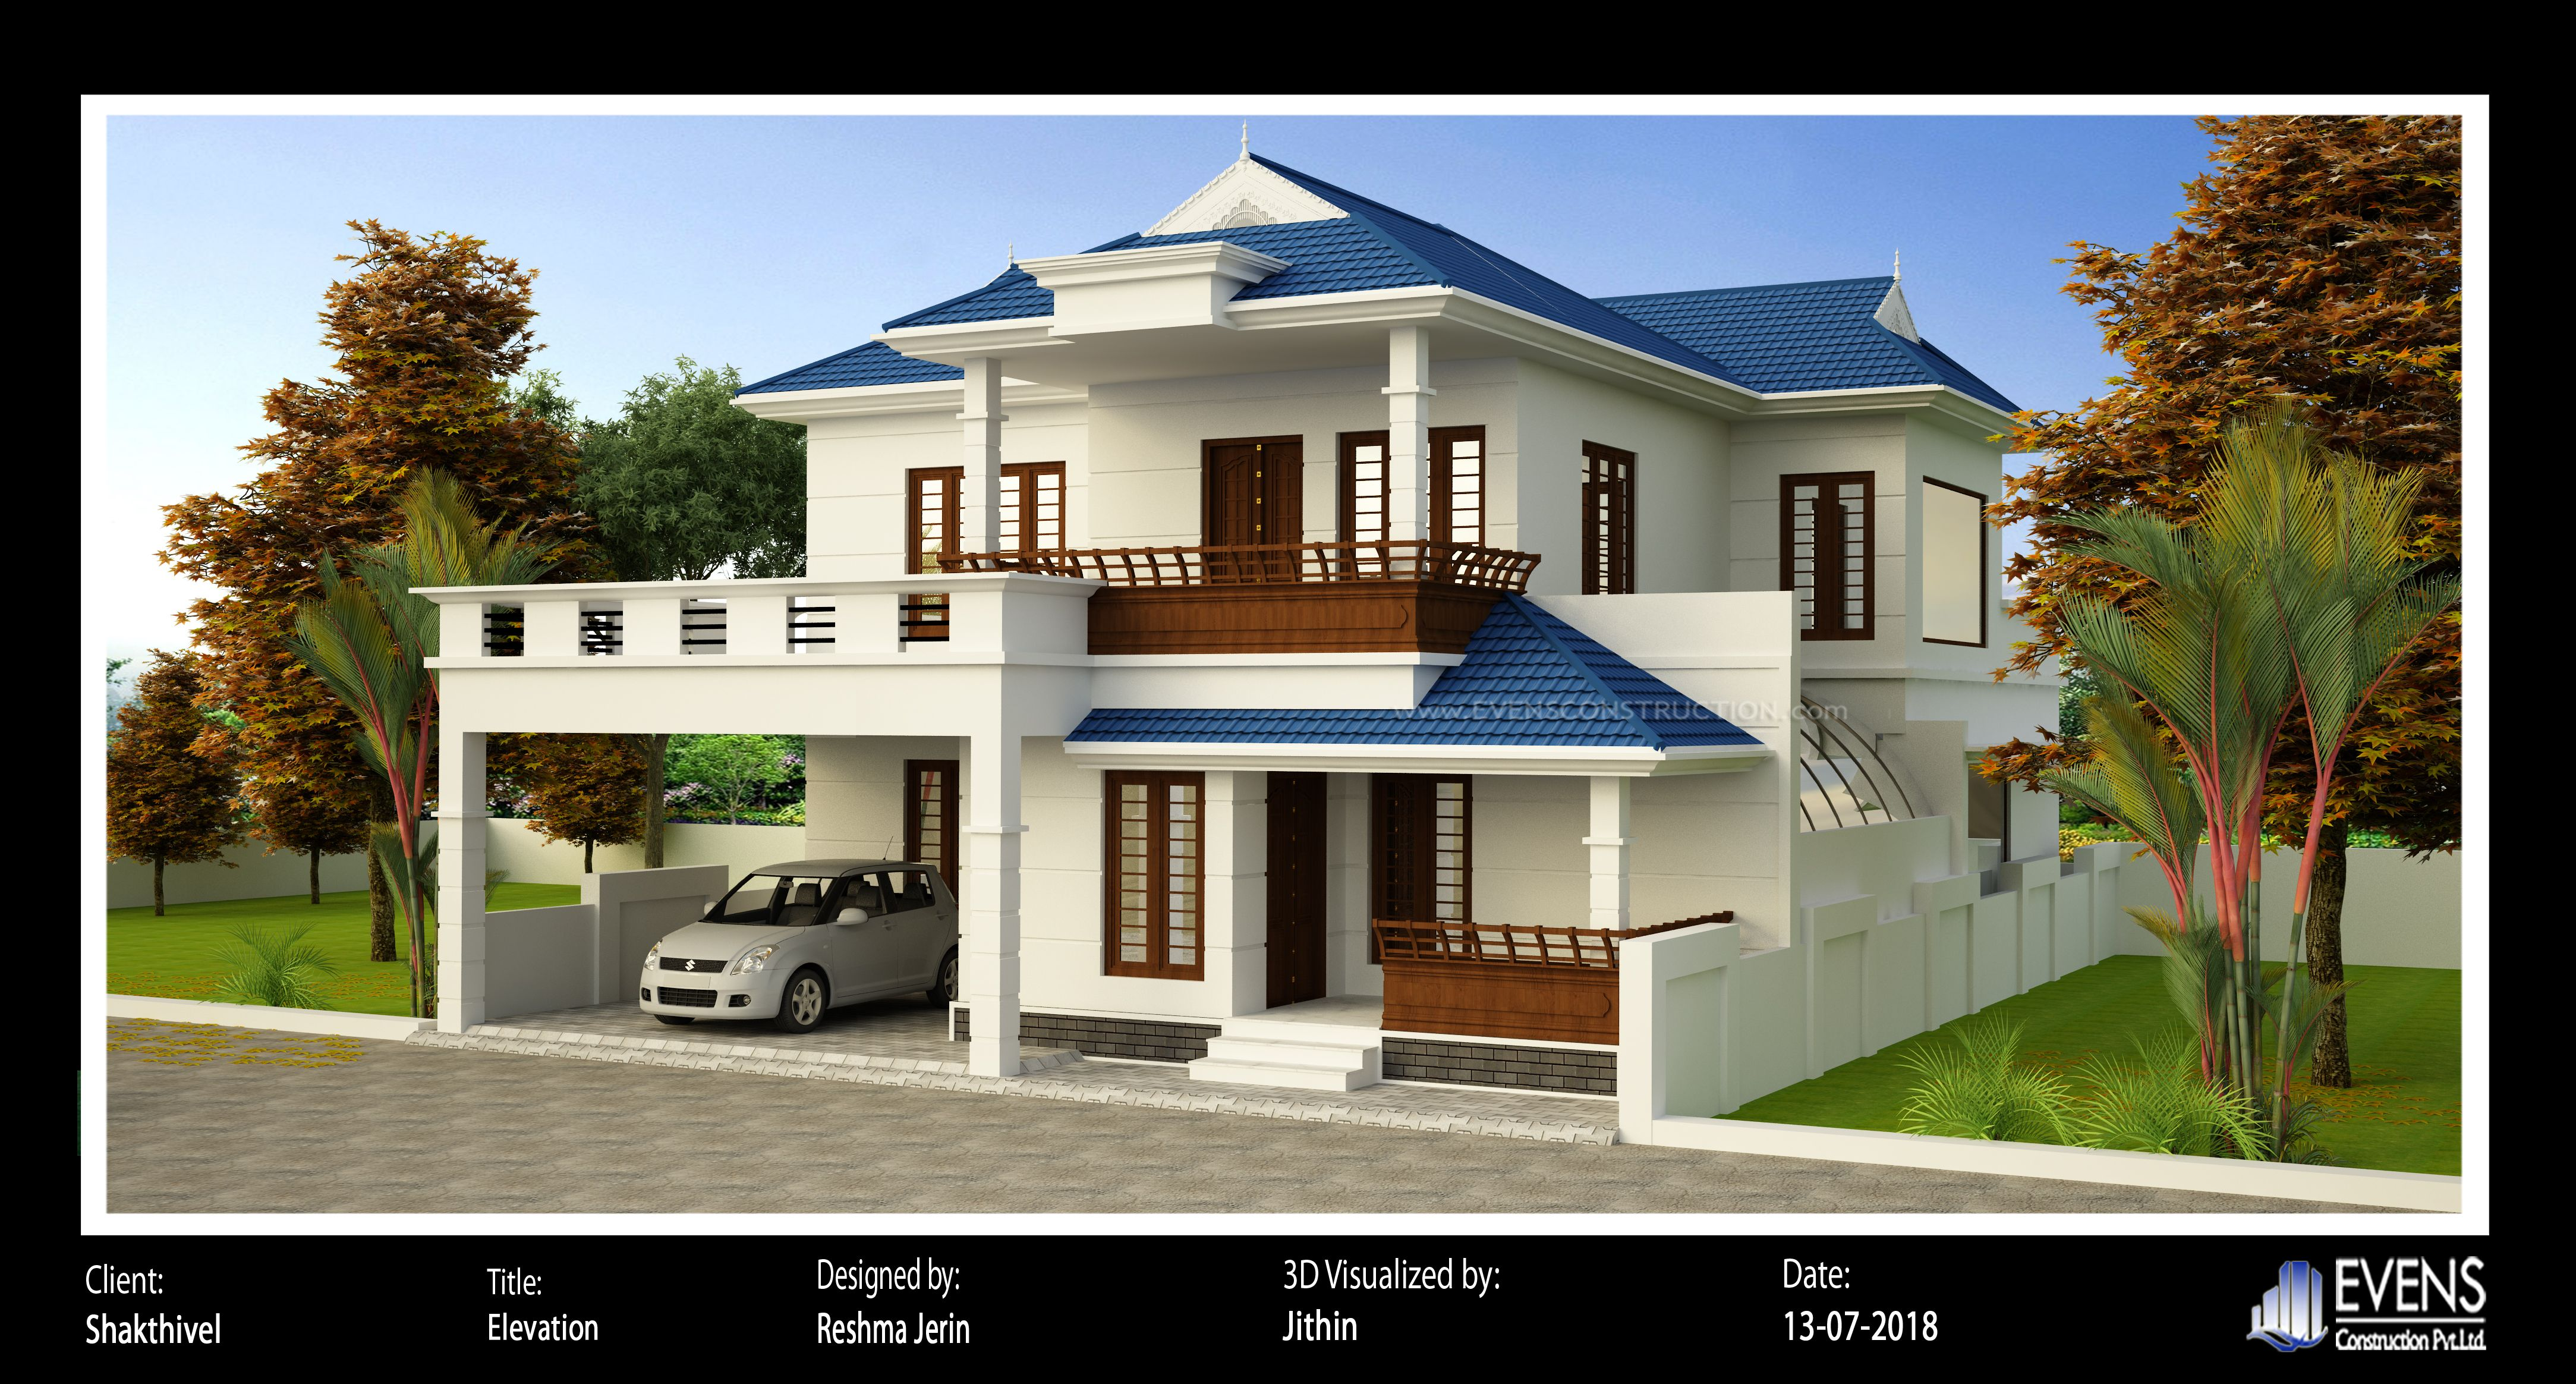 House Plan Design And Construction Contact Us 8086611166 8086600066 Kerala House Design House Plans House